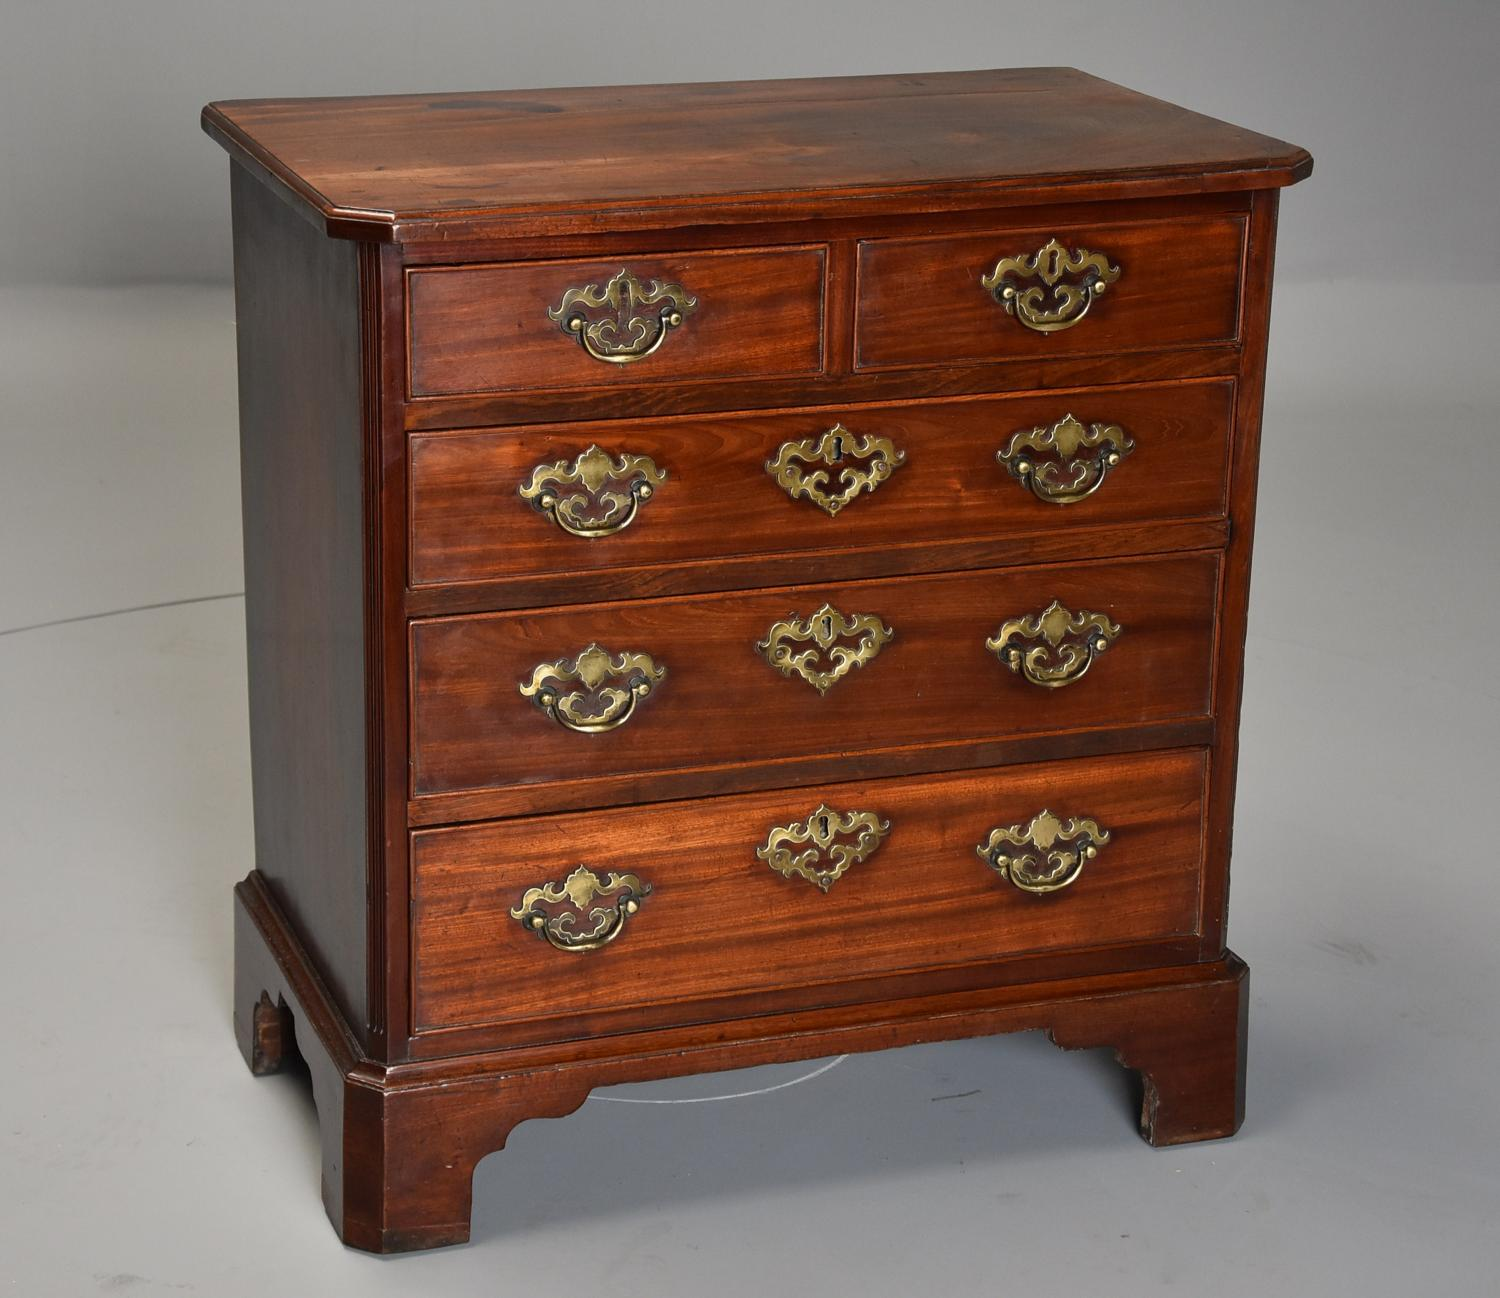 Small mid 18thc George II mahogany chest of drawers